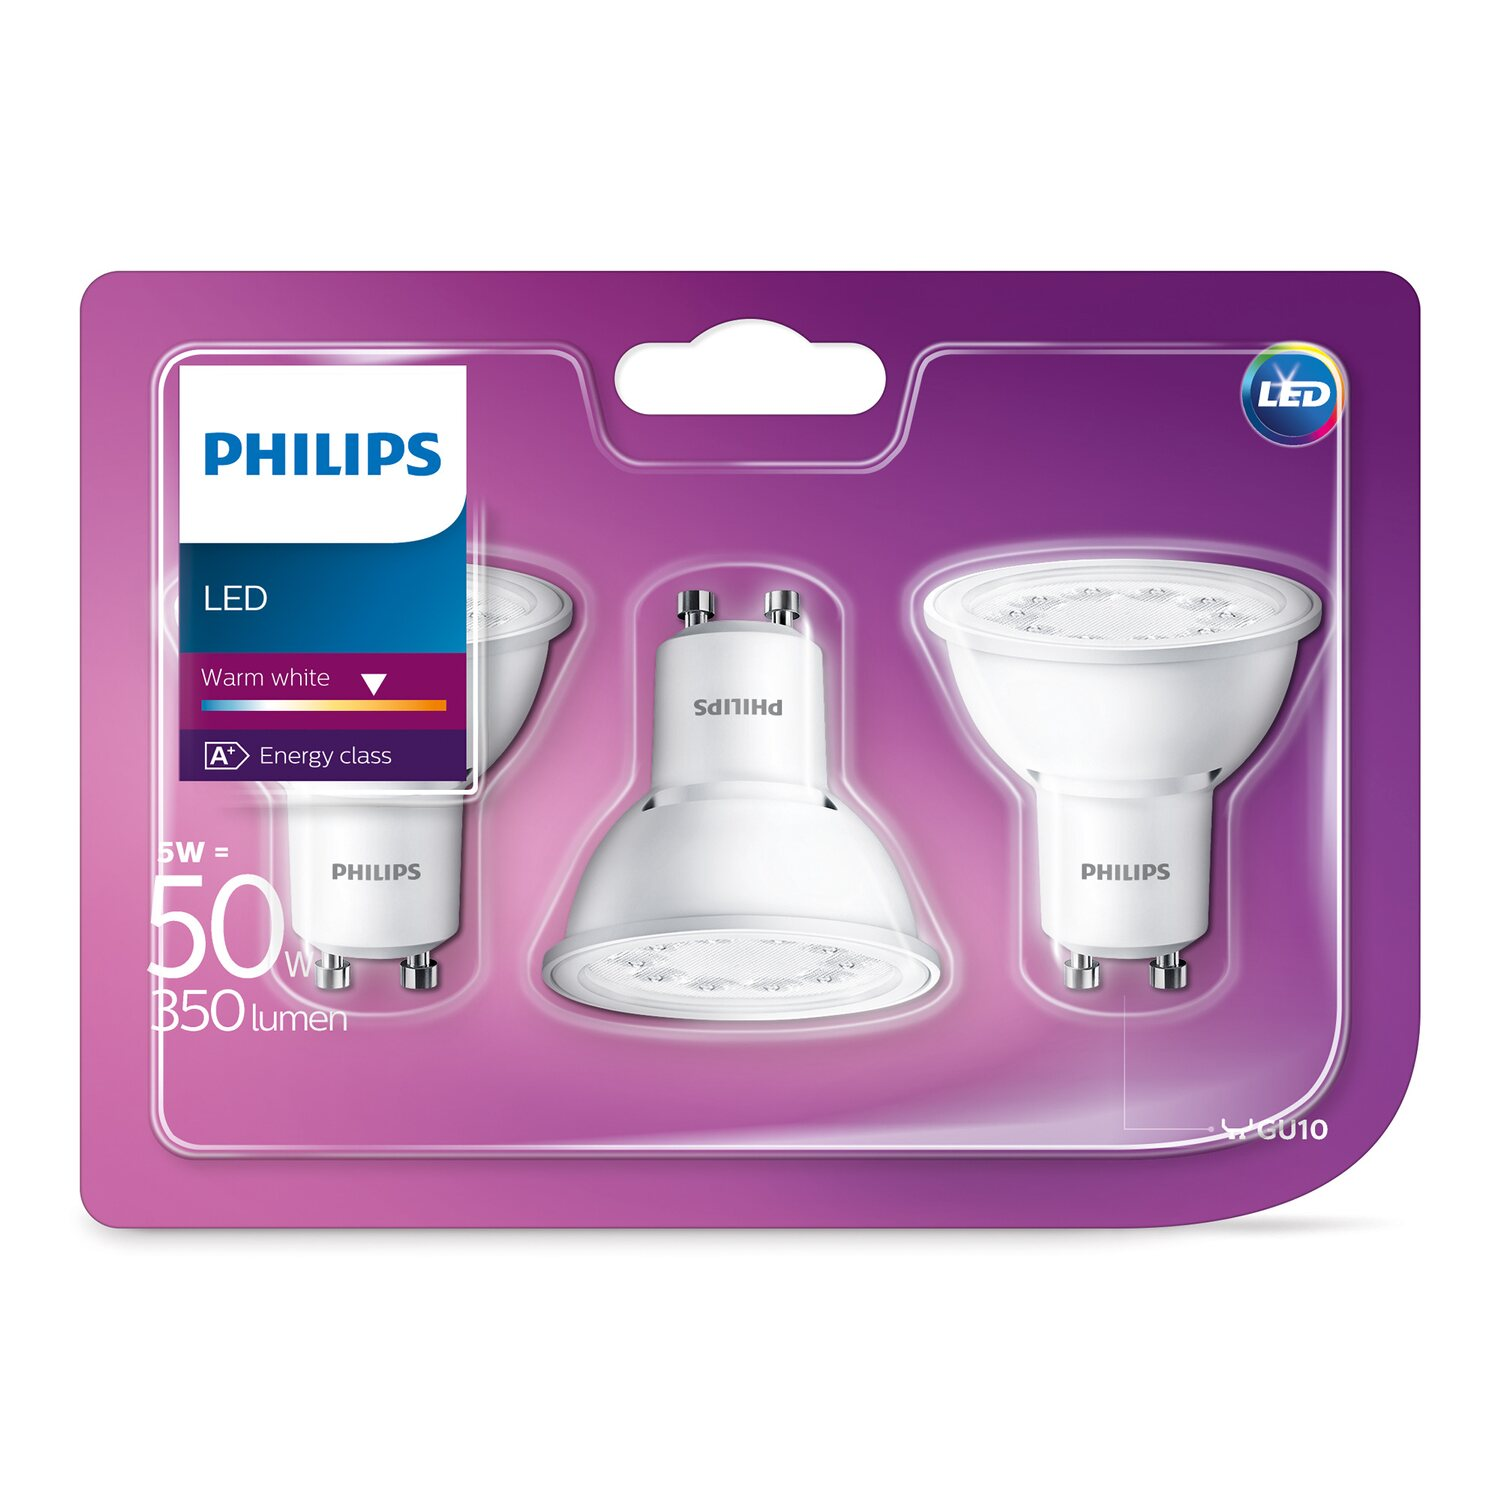 philips led leuchtmittel eek a gu10 reflektor 5 w 350 lm 3er set warmweiss kaufen bei obi. Black Bedroom Furniture Sets. Home Design Ideas